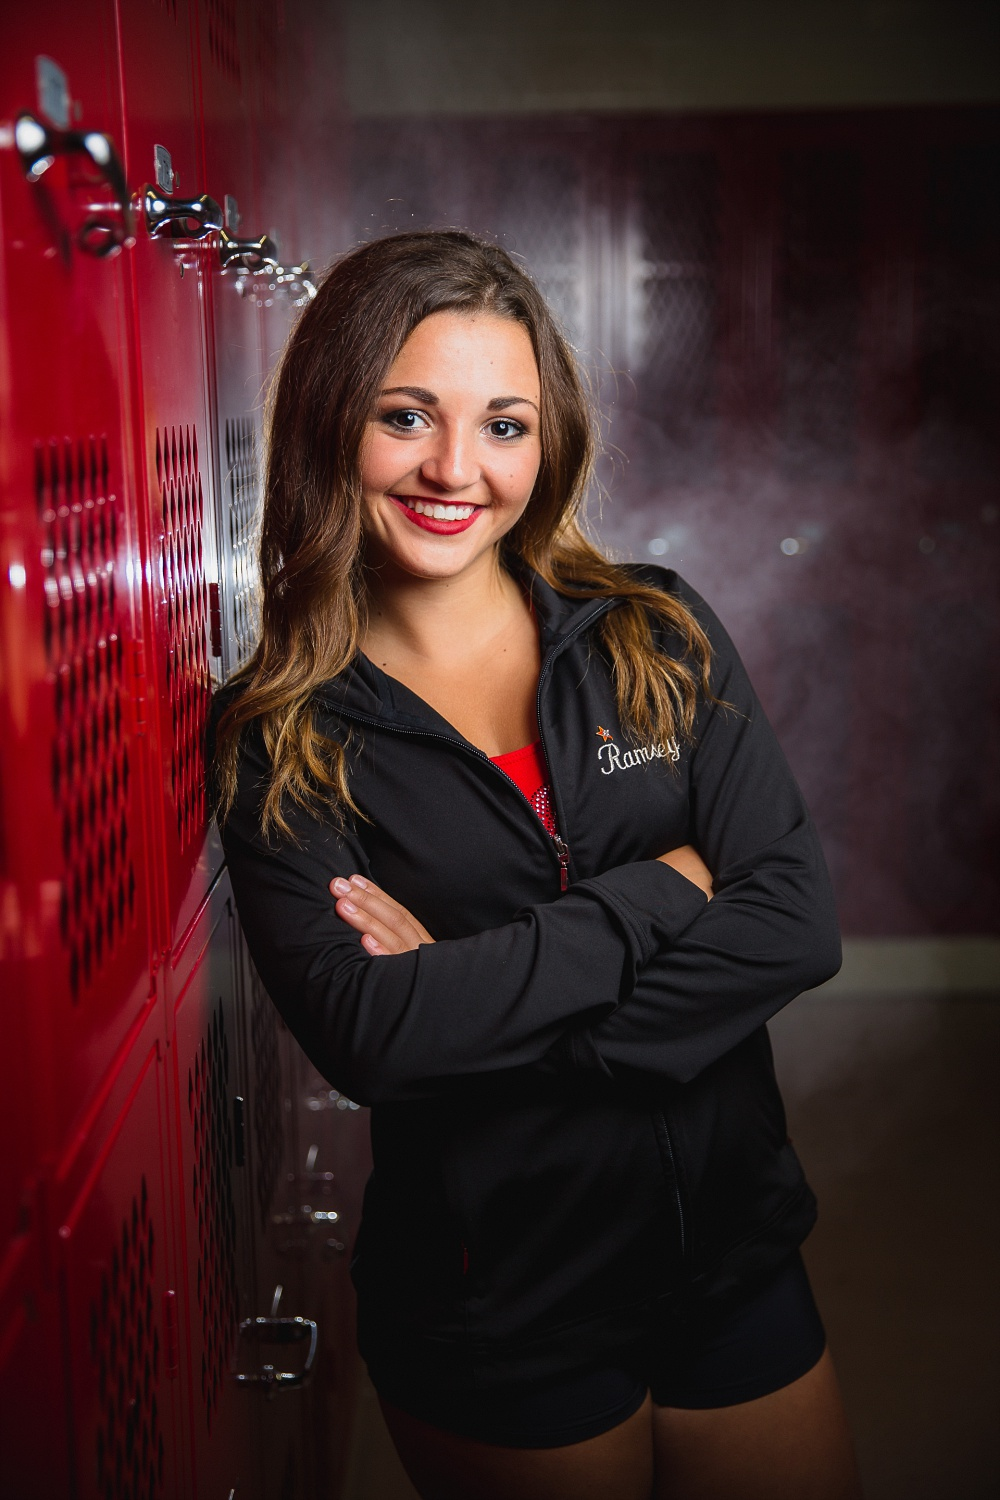 Dance Styled High School Senior Portraits in Detroit Lakes, MN | Photographed by Amber Langerud Photography | Dancer in Locker Room